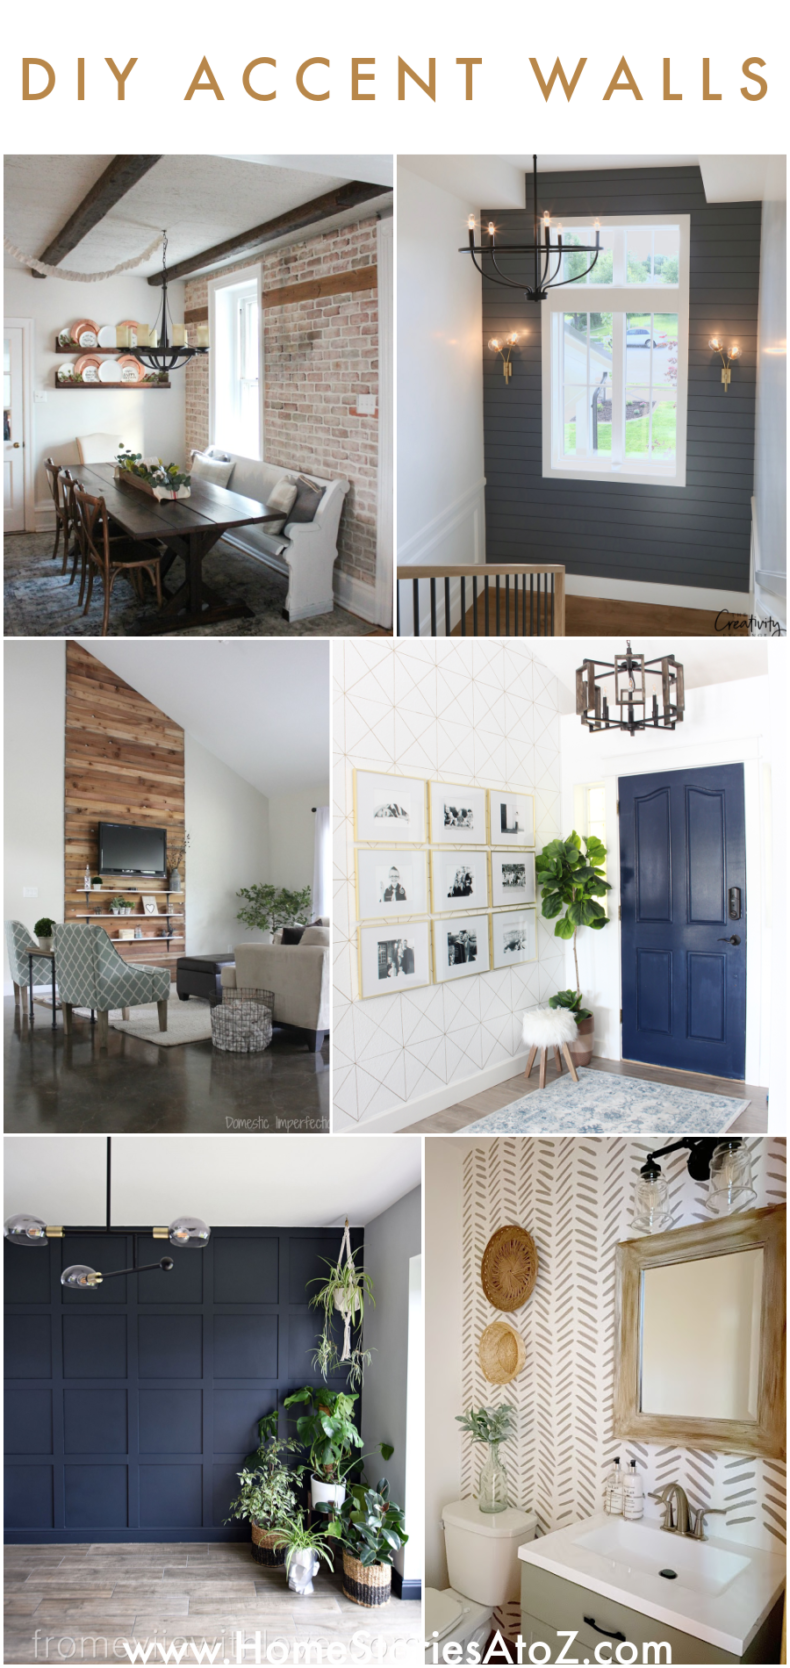 DIY Accent Walls - Transform Your Space